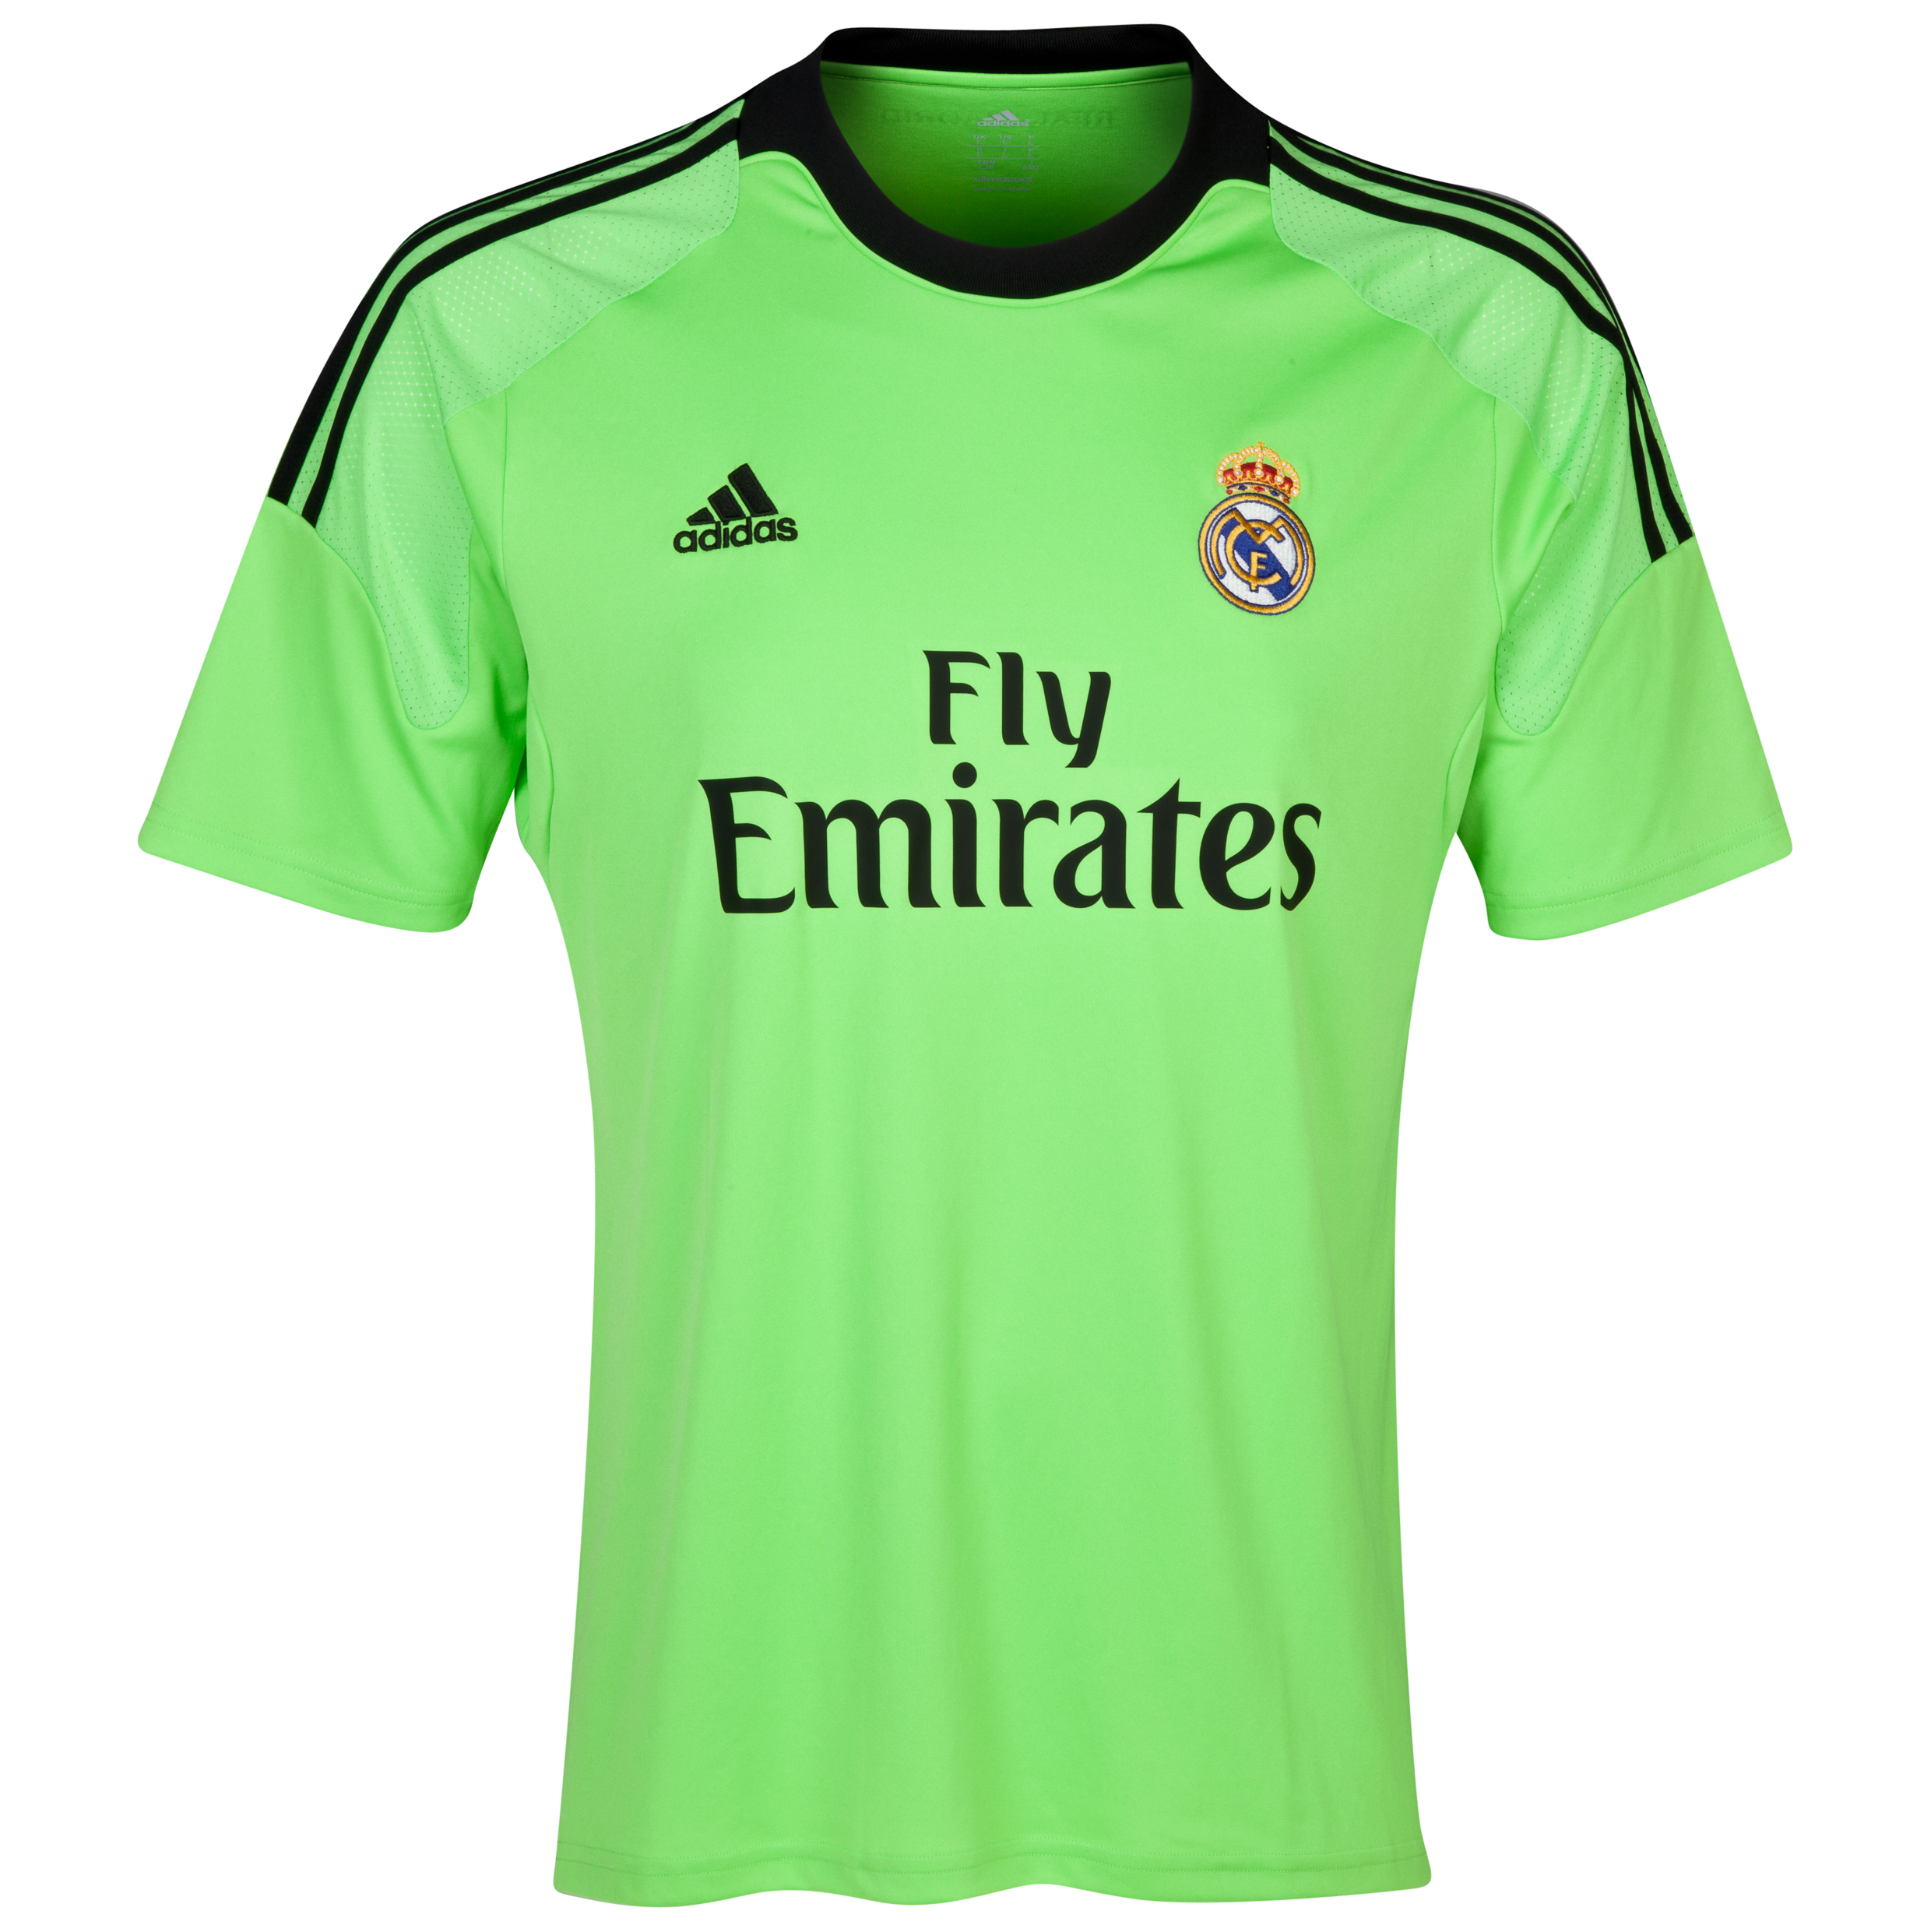 http://images.kitbag.com/rm-131503.jpg?width=400&height=400&quality=95?width=400&height=400&quality=95